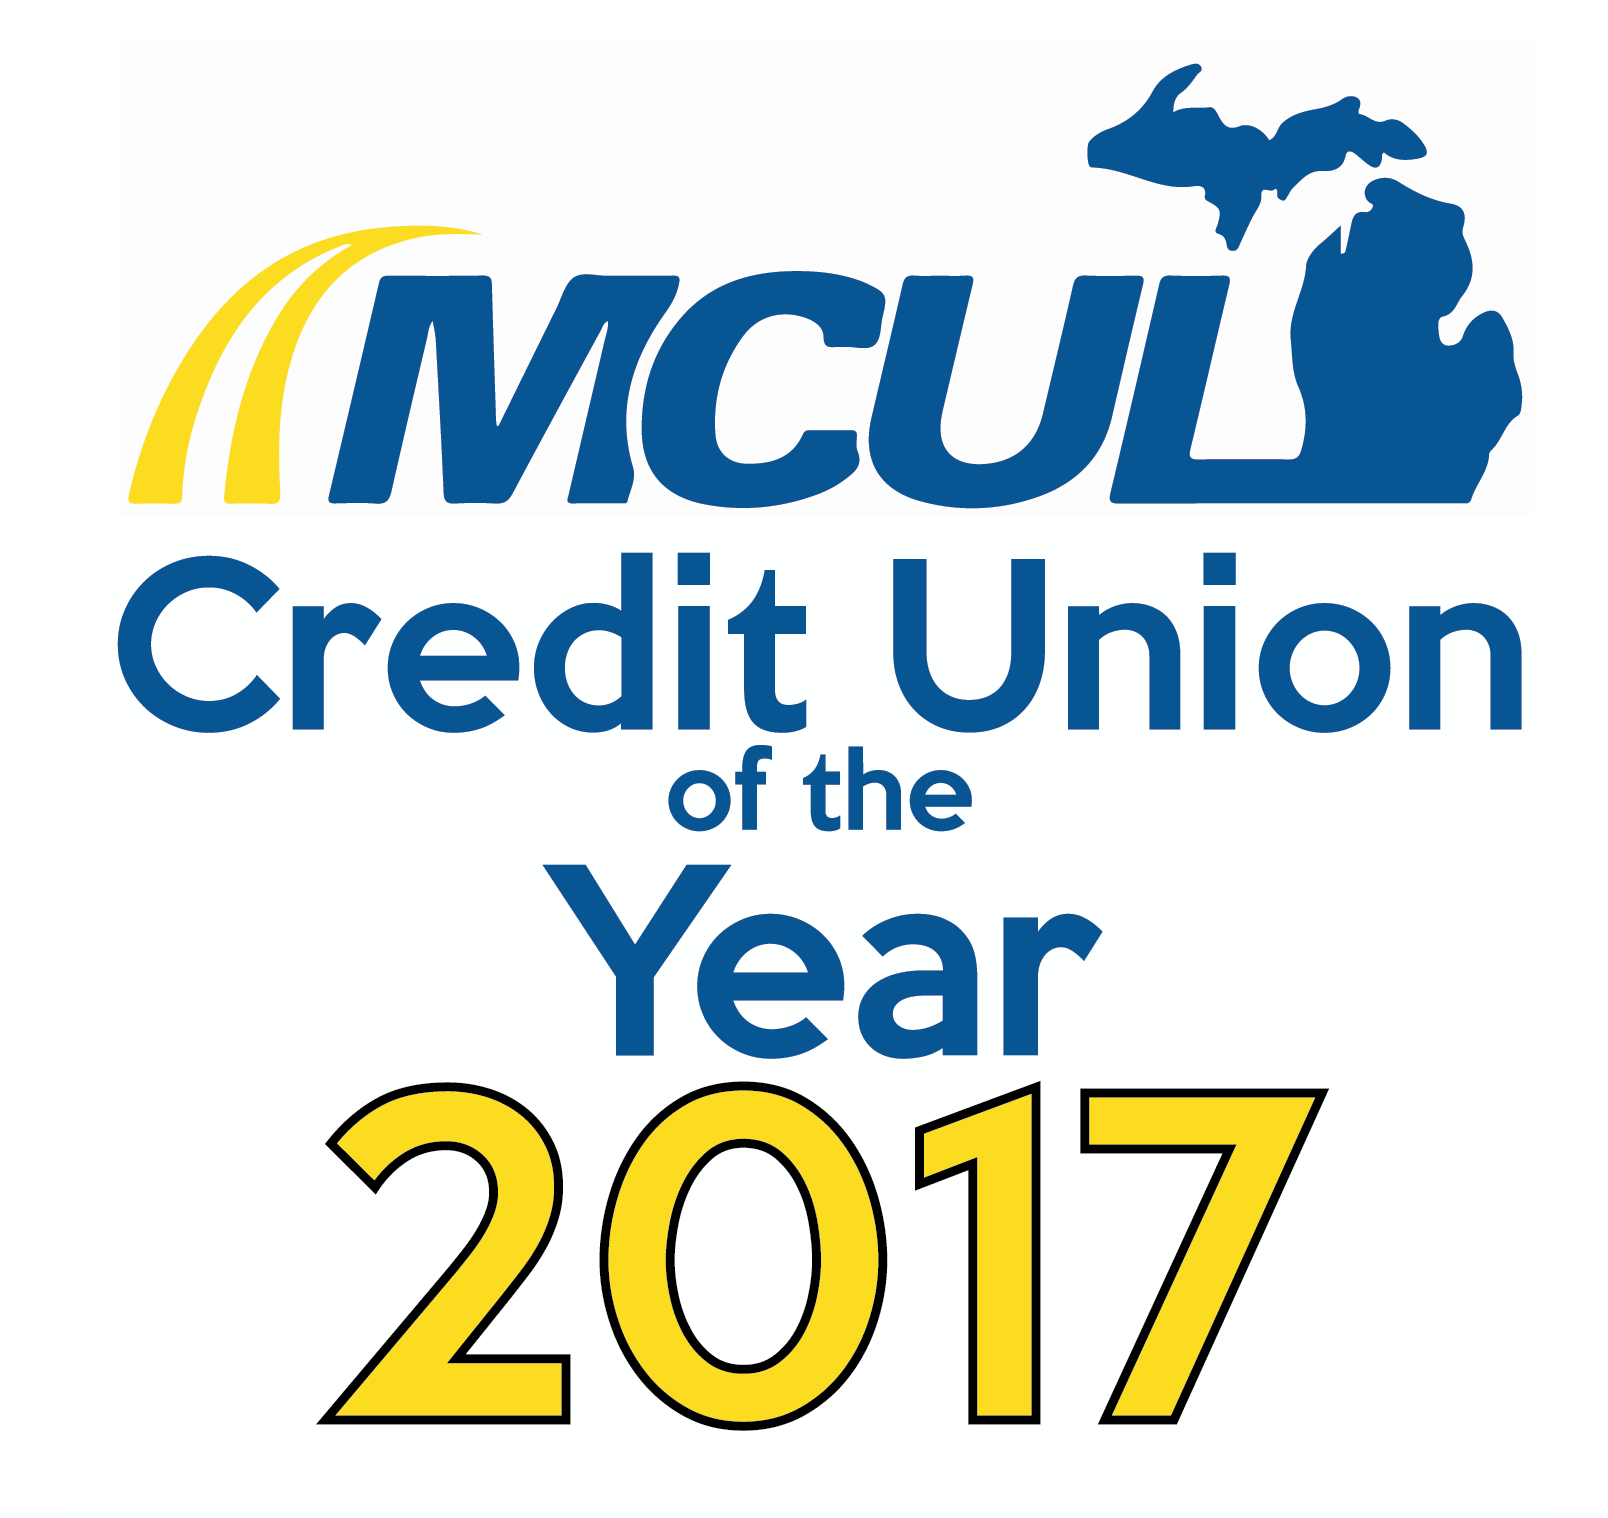 michigan credit union of the year 2017